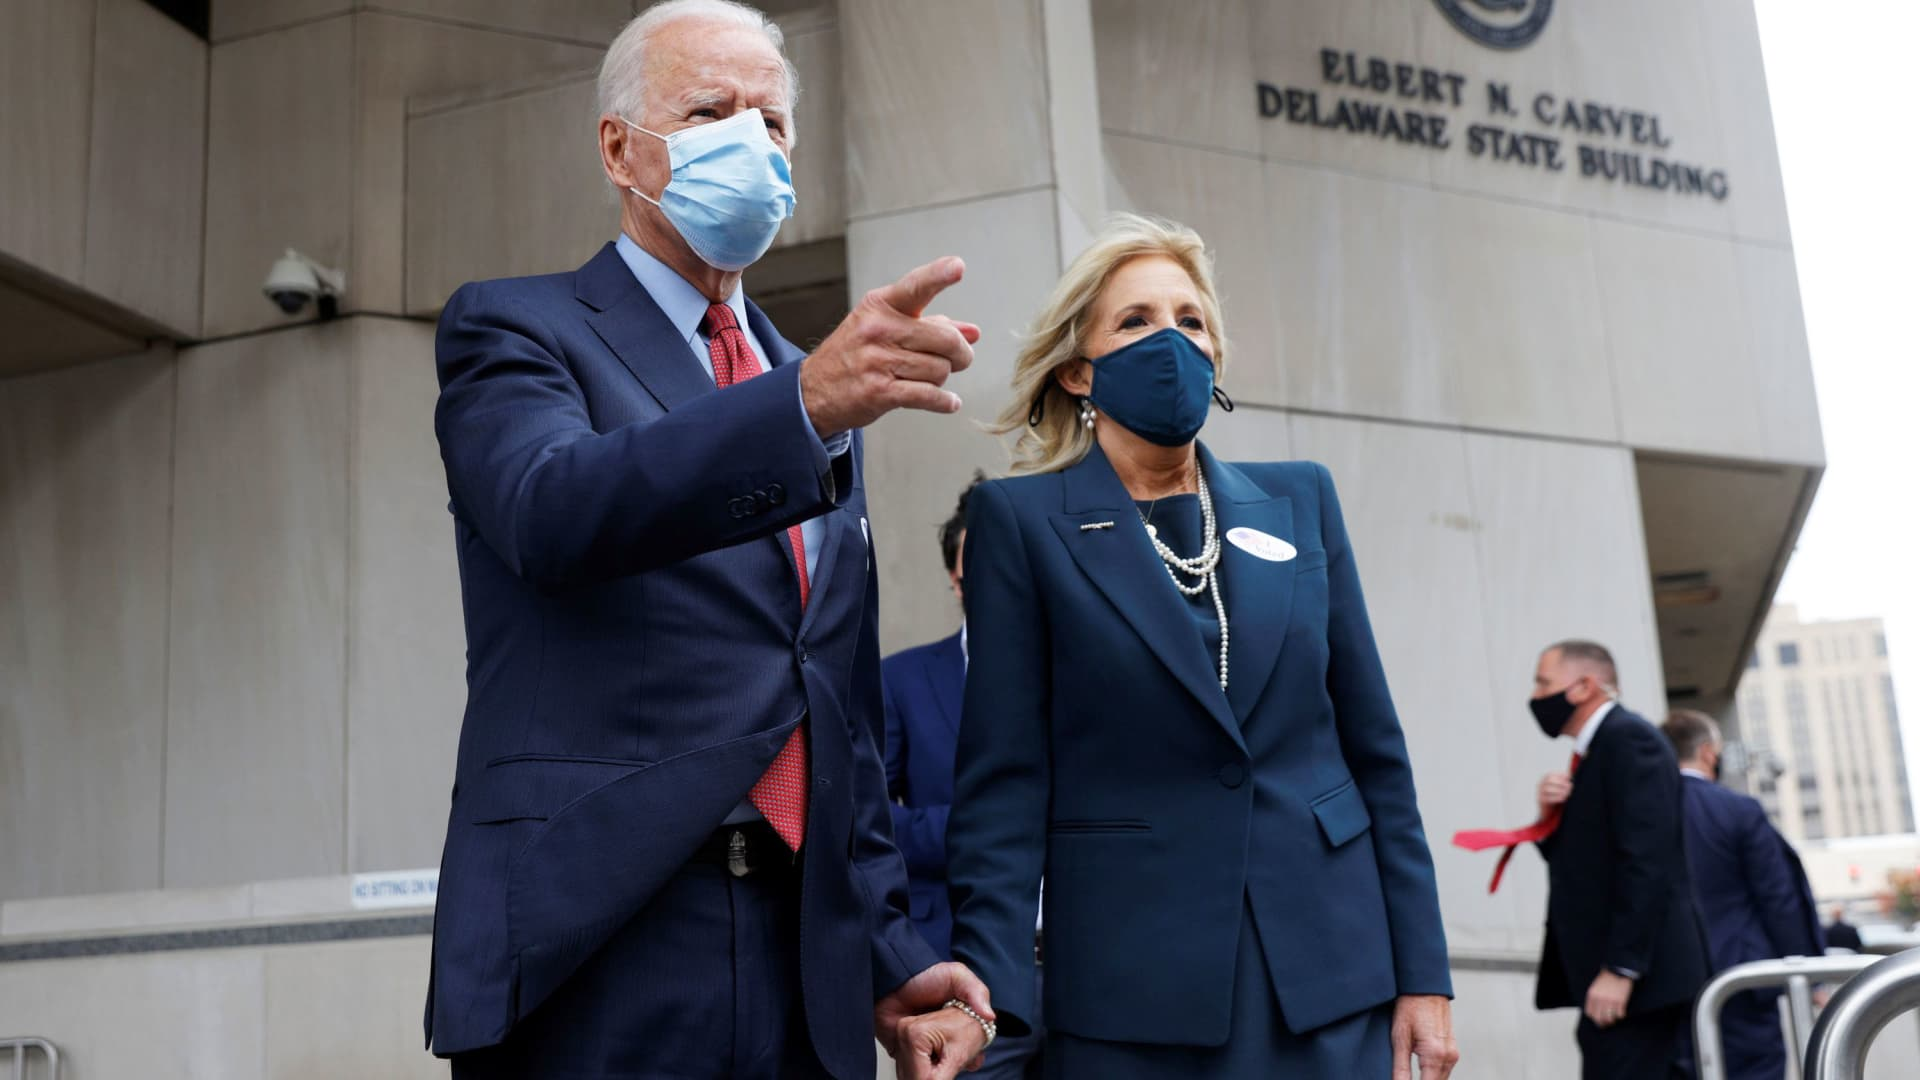 Democratic U.S. presidential nominee and former Vice President Joe Biden talks to reporters with his wife Jill at his side as they depart after casting their votes in the 2020 U.S. presidential election in Wilmington, Delaware, October 28, 2020.